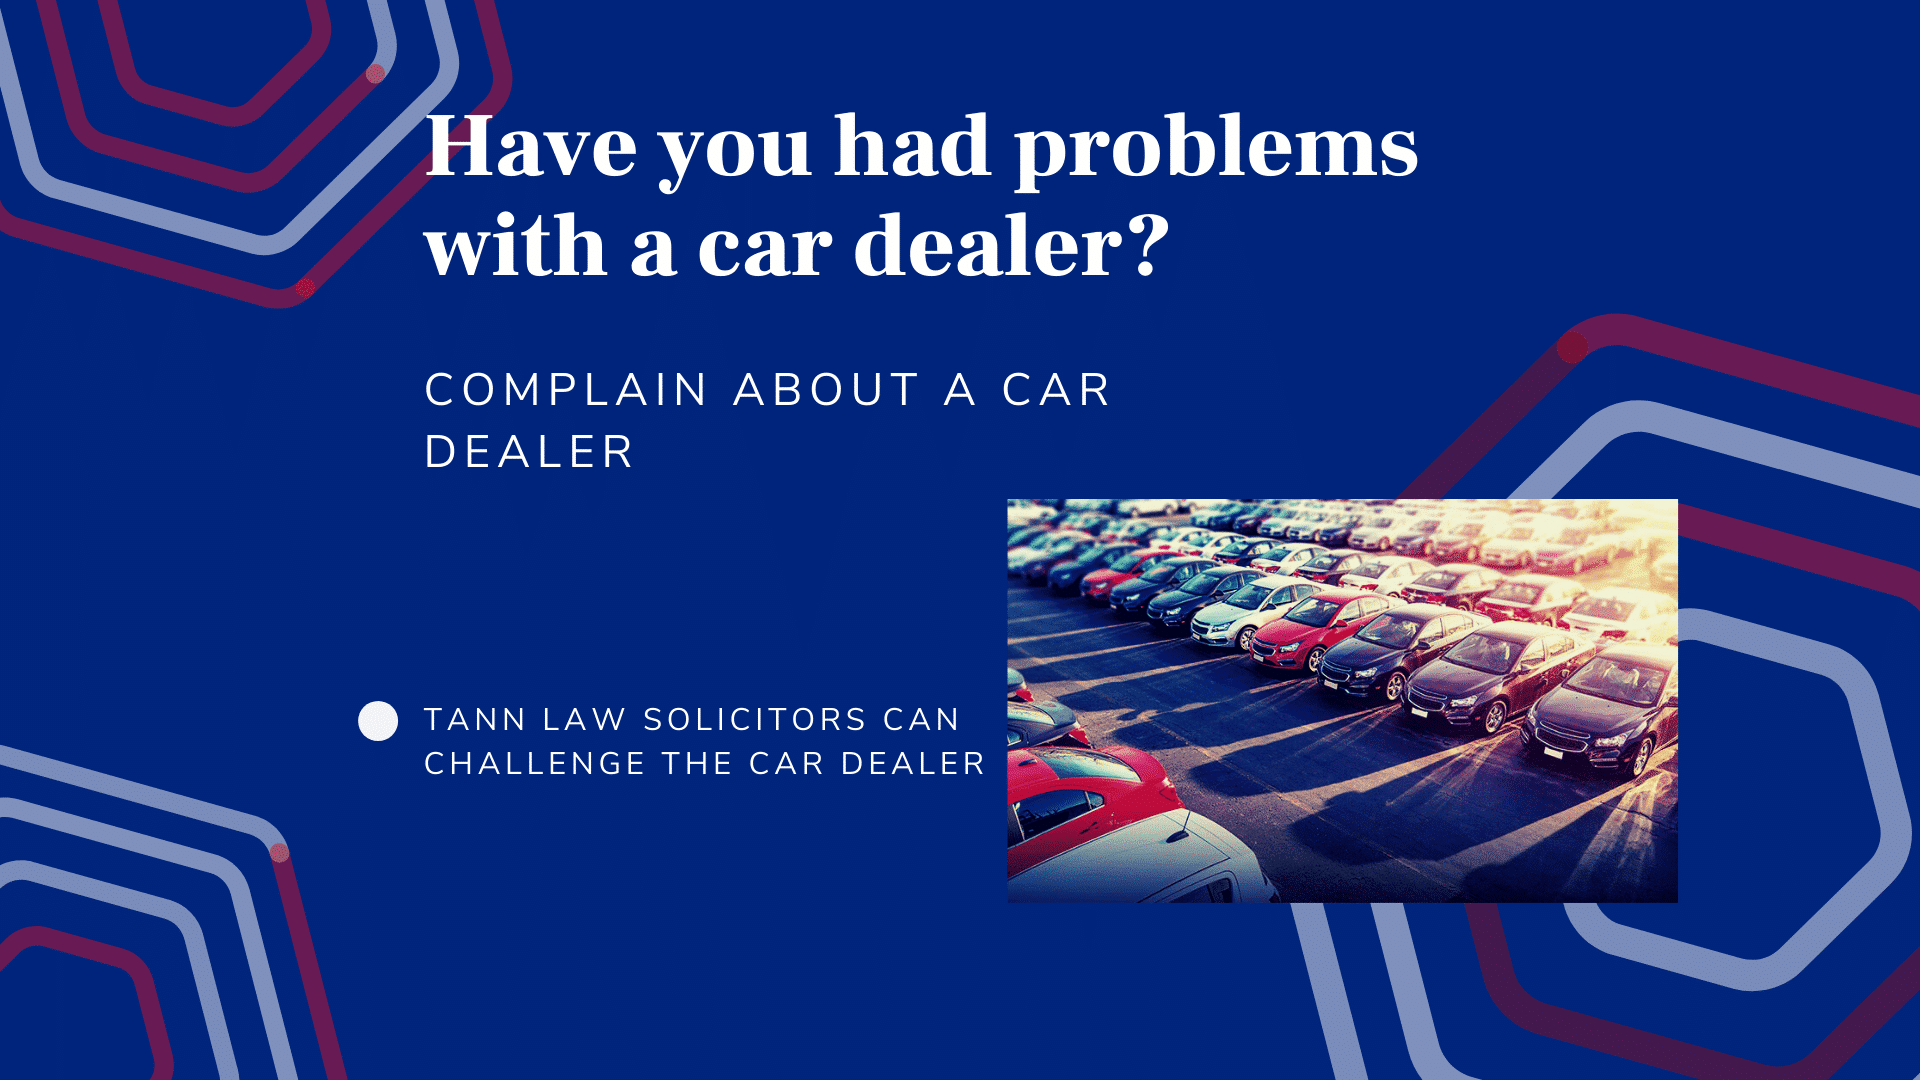 Have-you-had-problems-with-a-car-dealer-complain-about-a-car-dealer